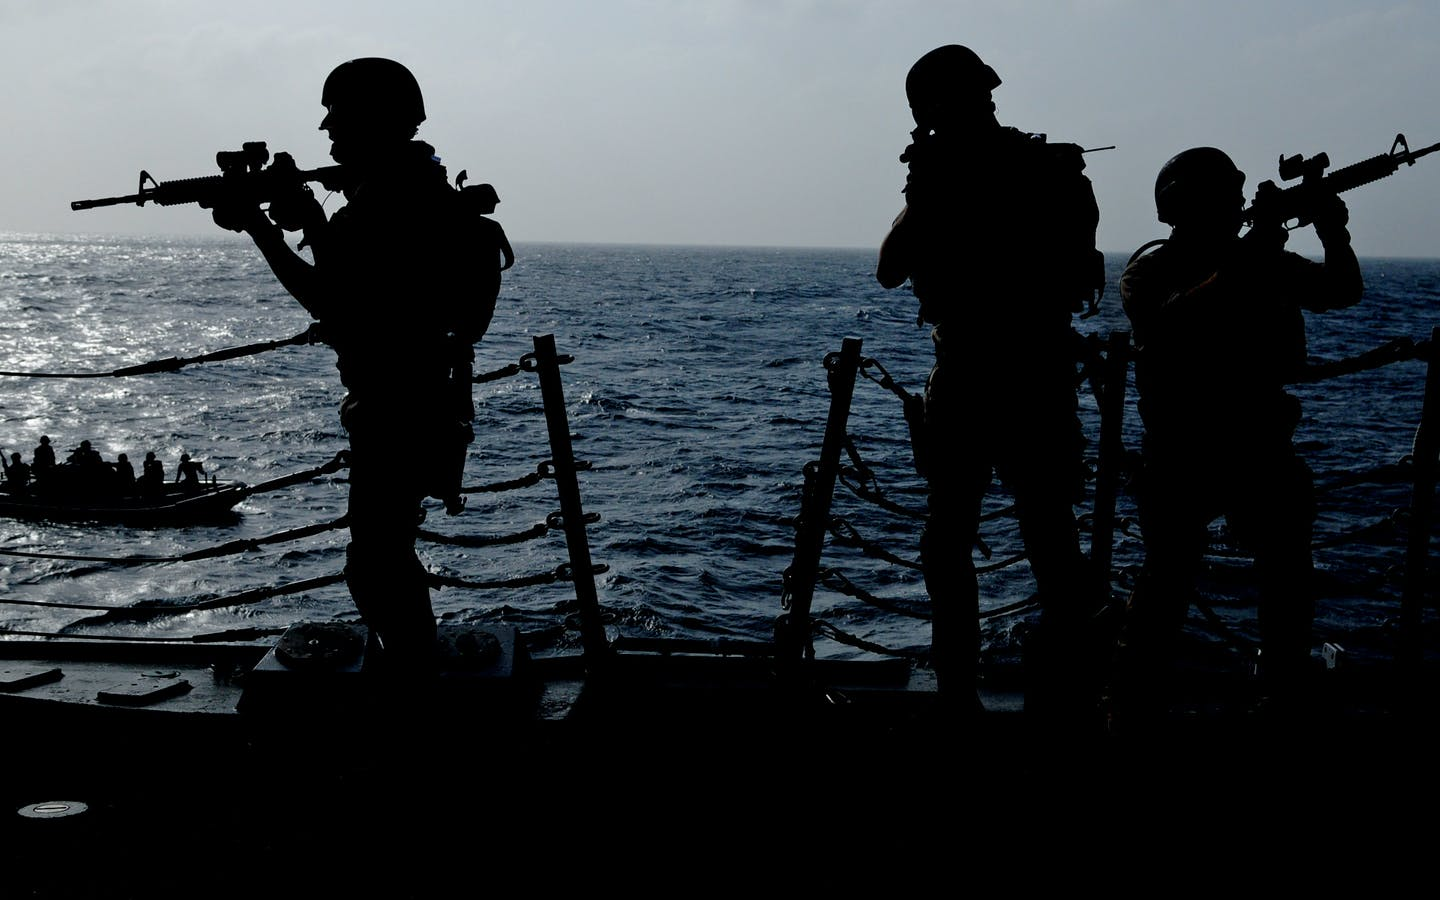 Silhouette of soldiers on a ship with a smaller ship in the background